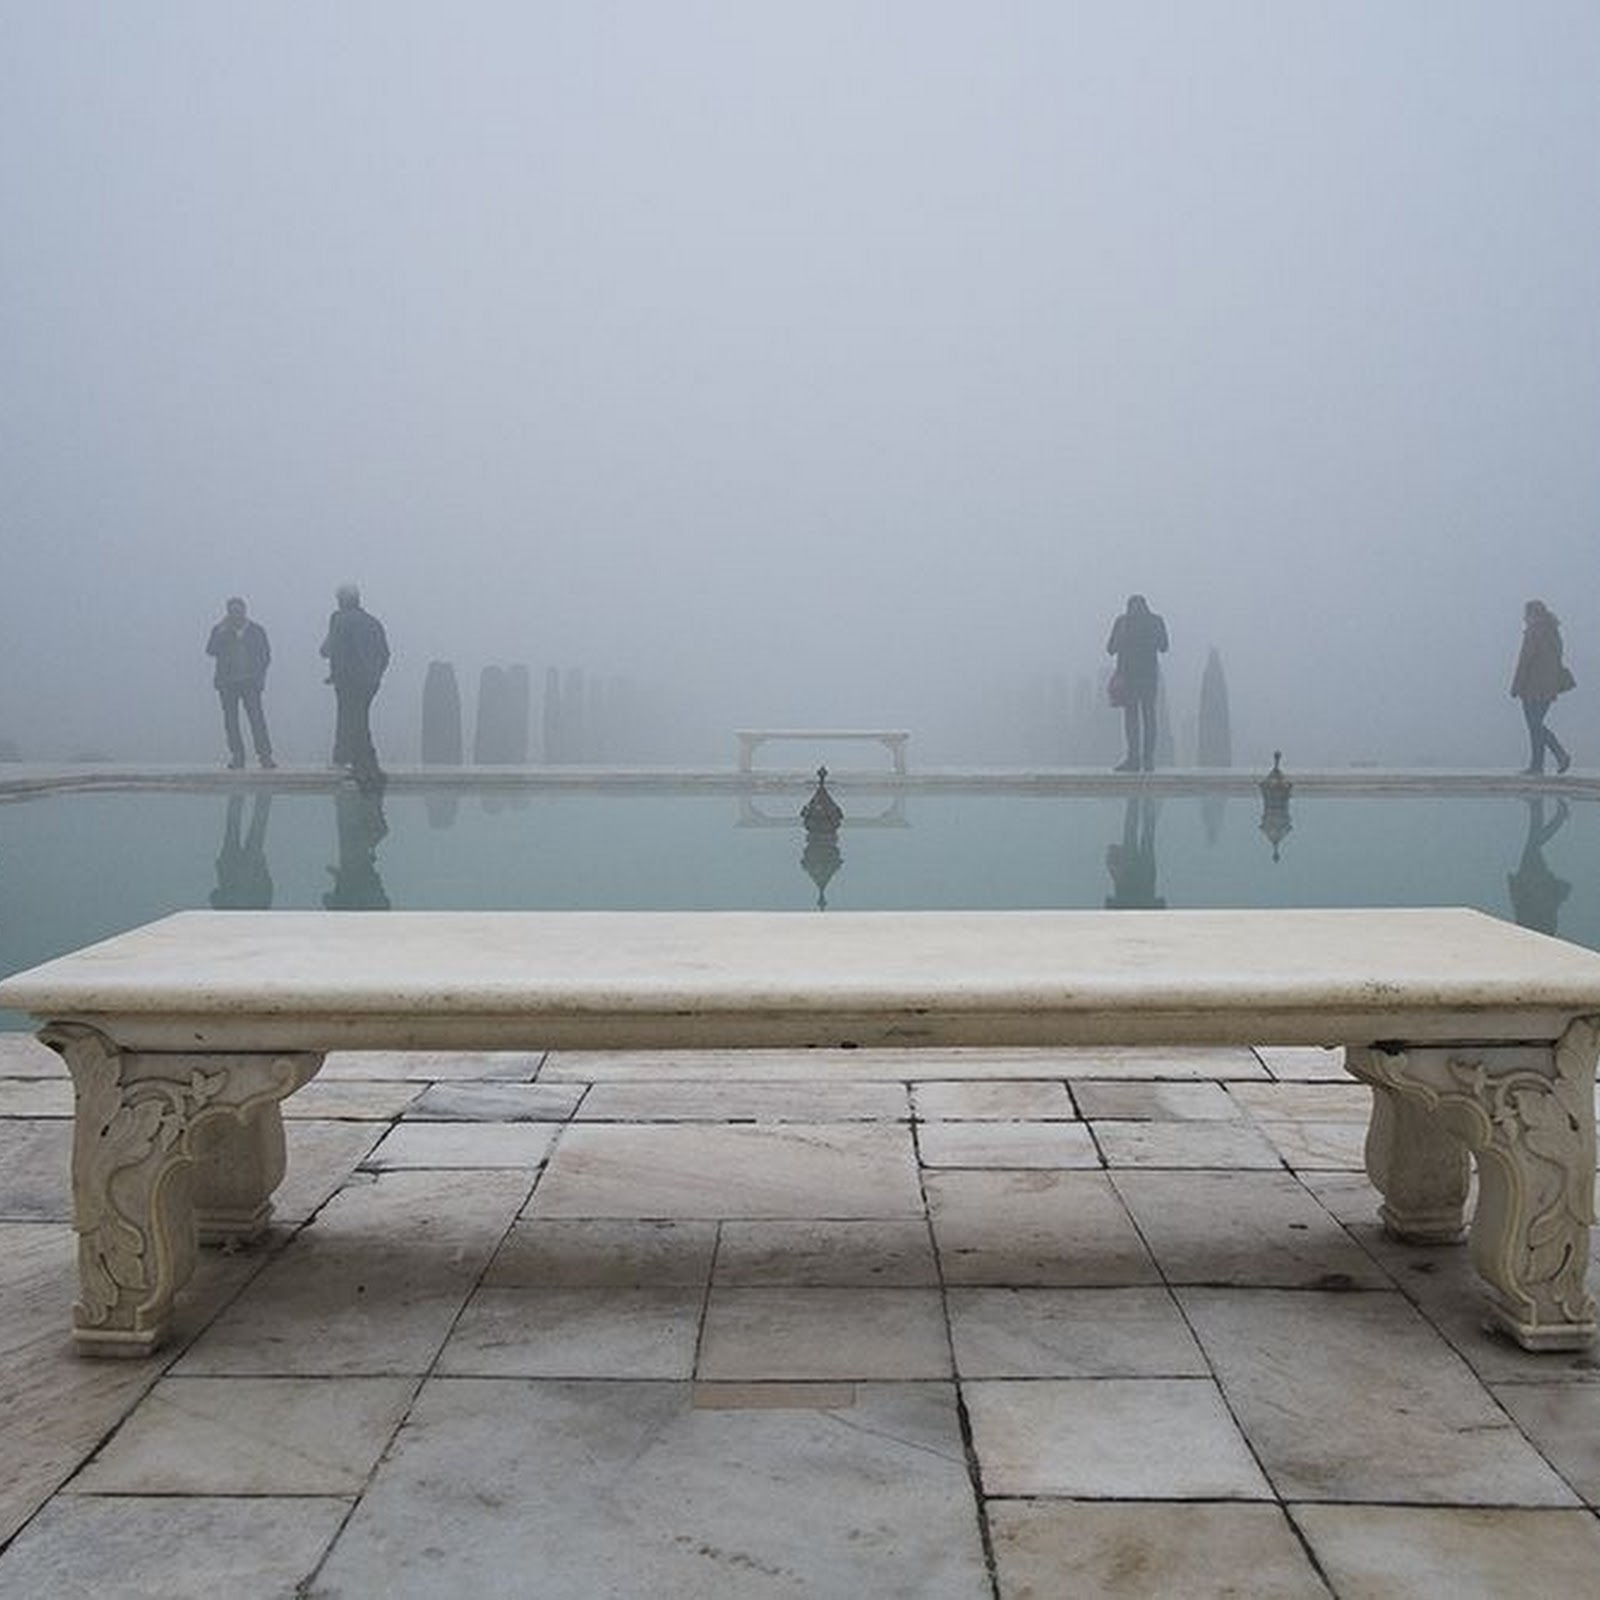 Photos of World's Famous Monuments Taken The Other Way